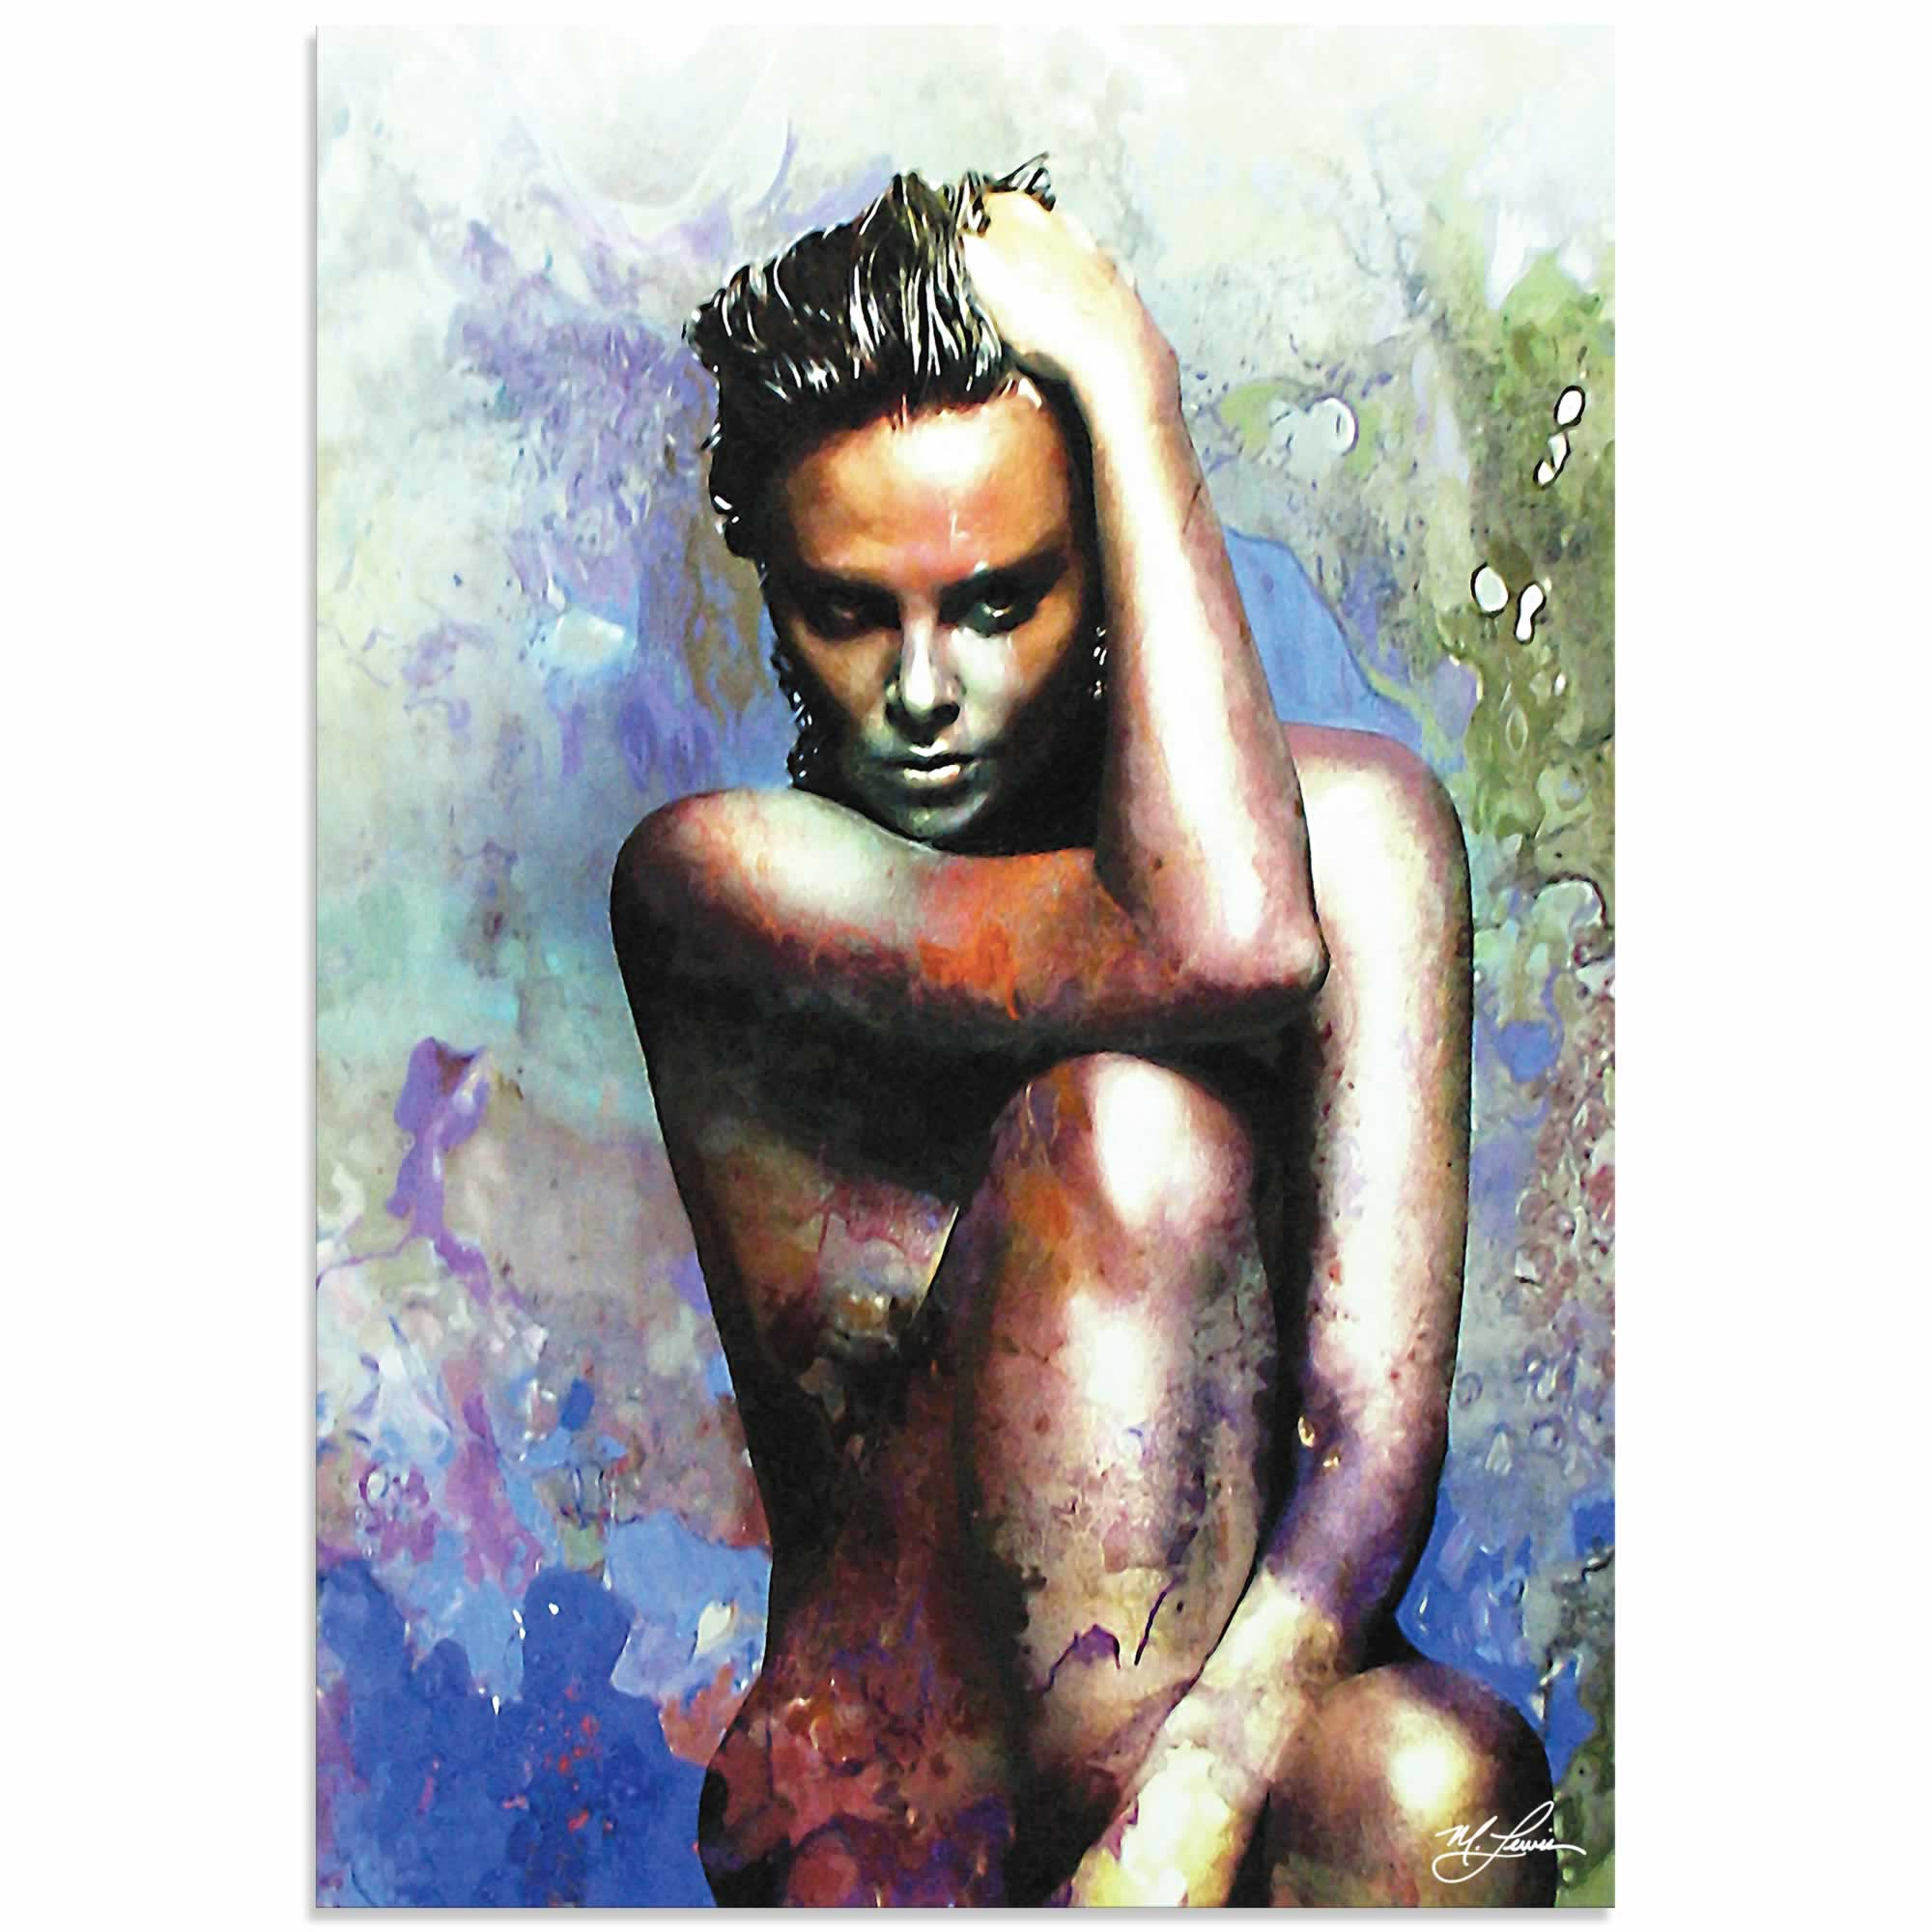 Charlize Theron Blue Daze 2 | Pop Art Painting by Mark Lewis, Signed & Numbered Limited Edition